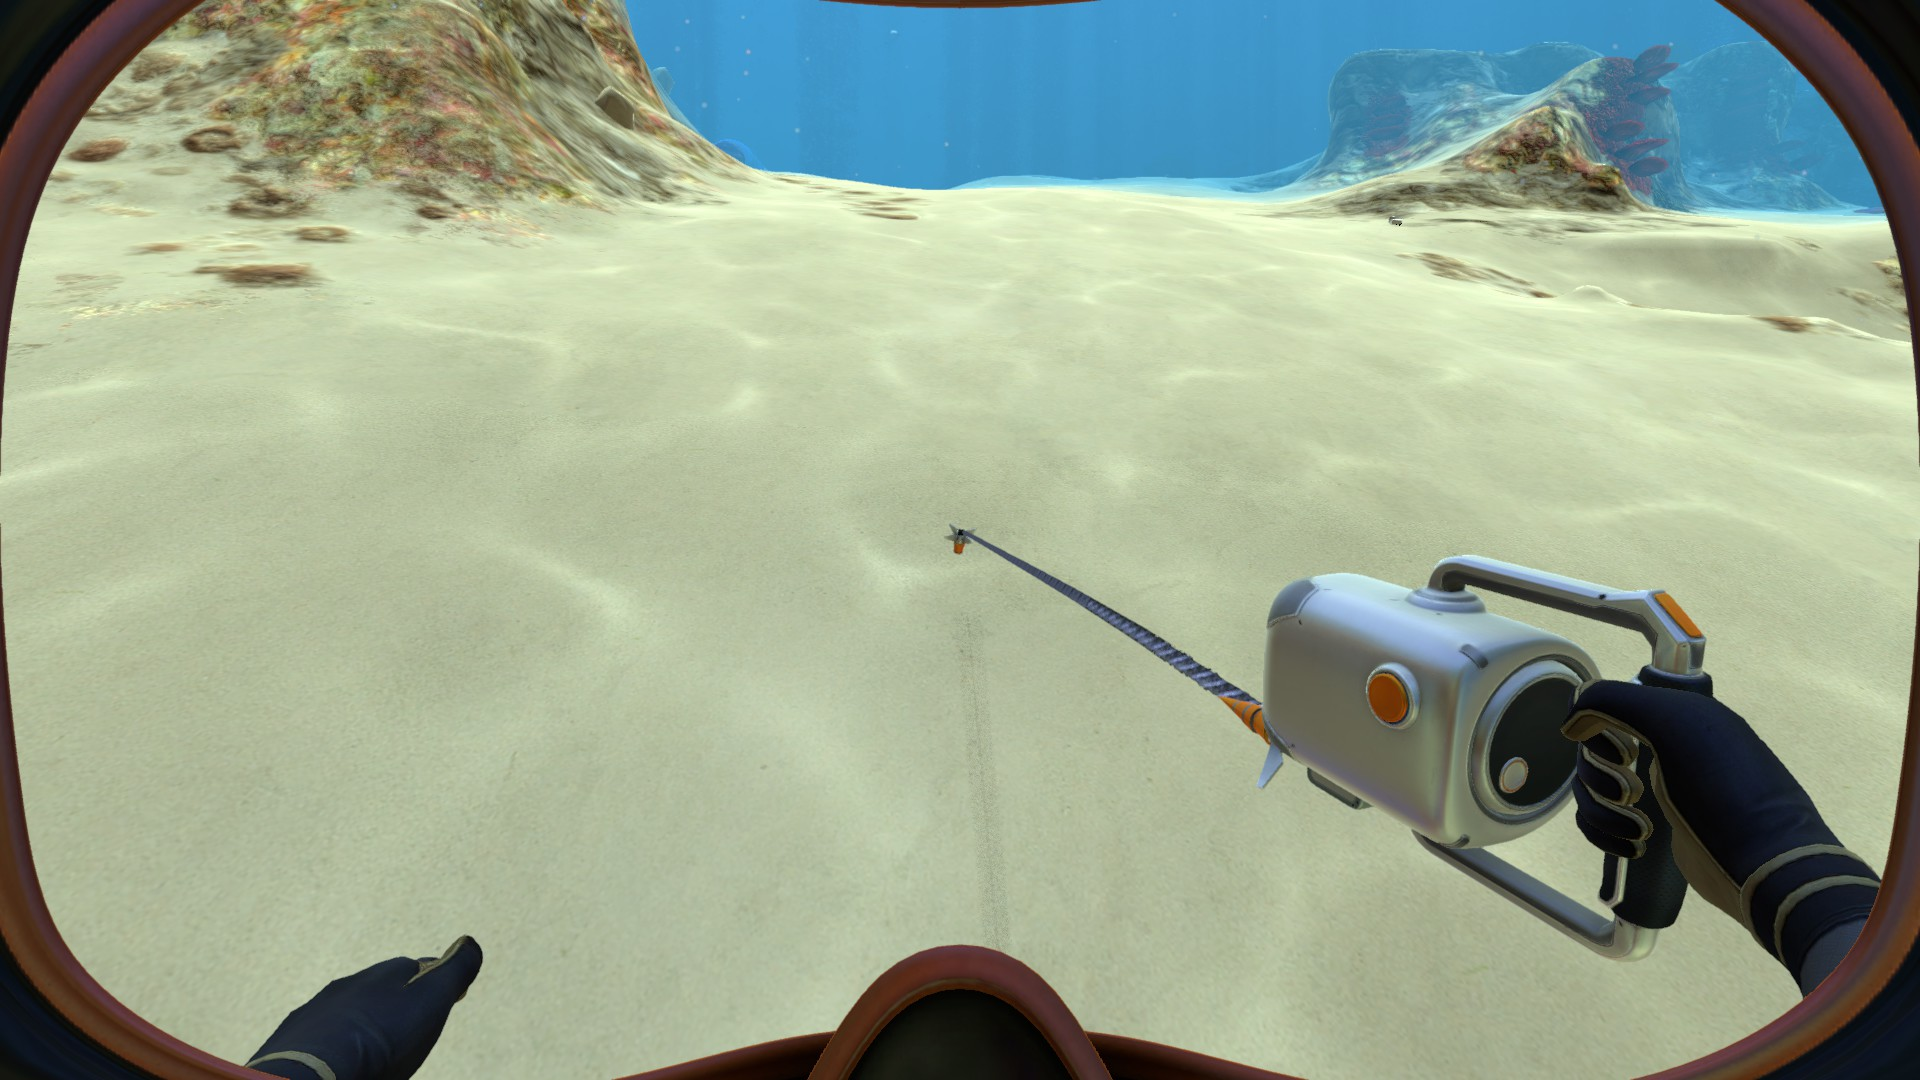 Файл:Dive Reel in the player's hand.jpg